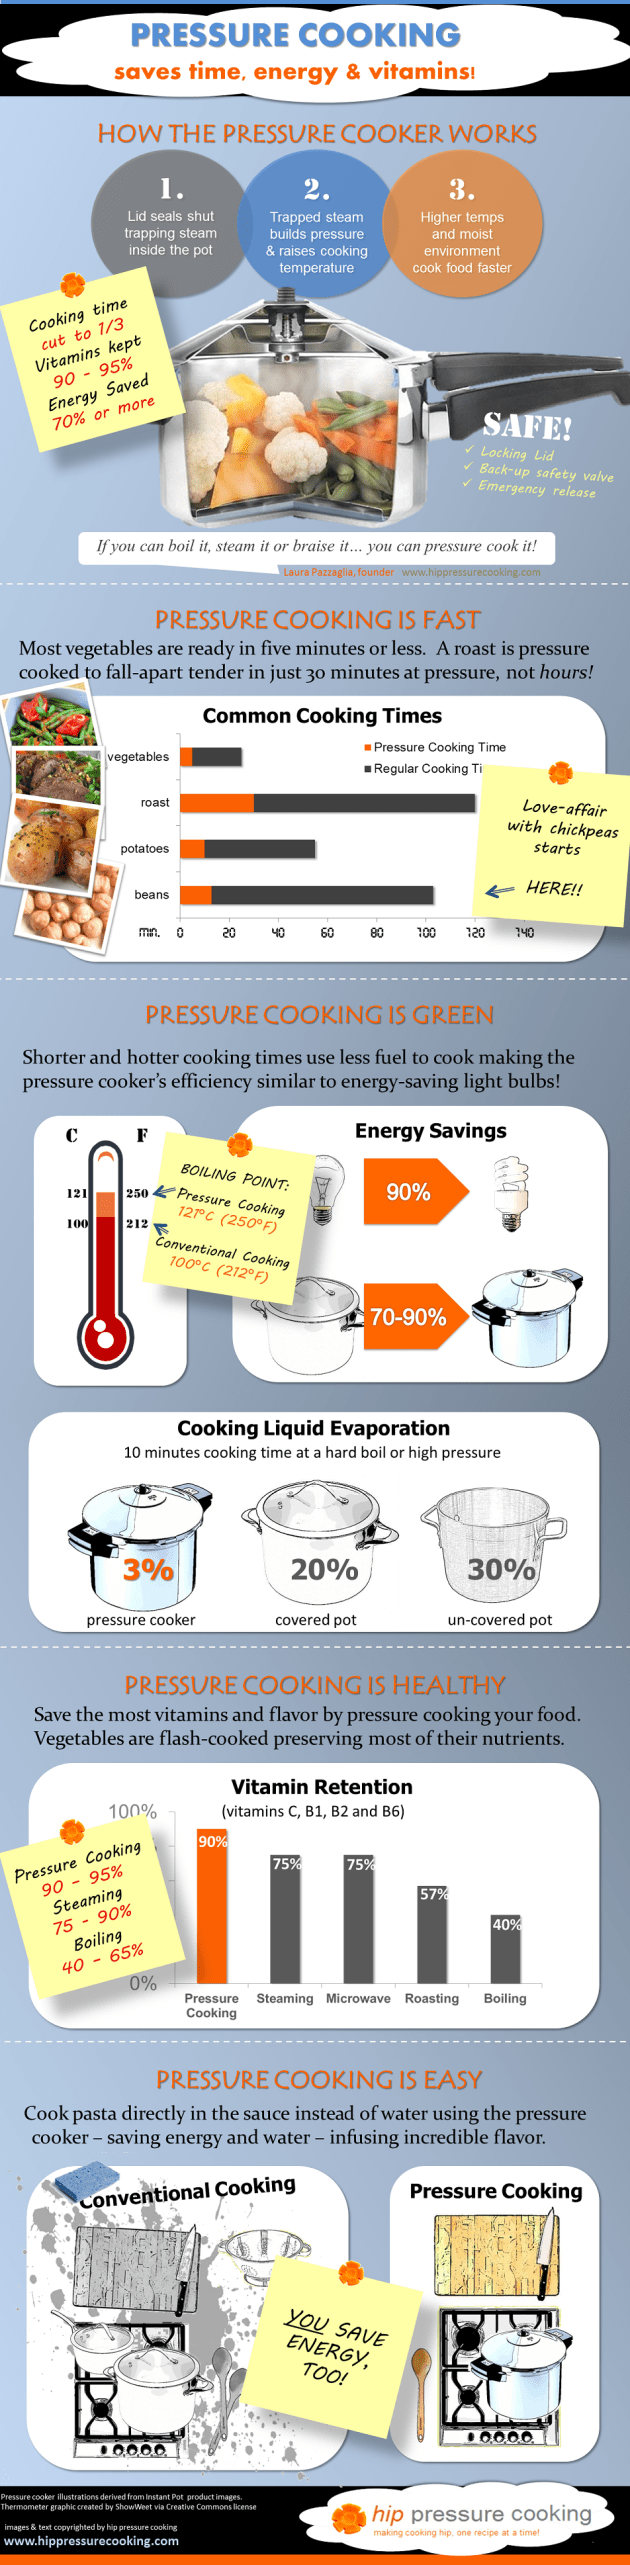 Benefits of Pressure Cooking - Info Graphic!